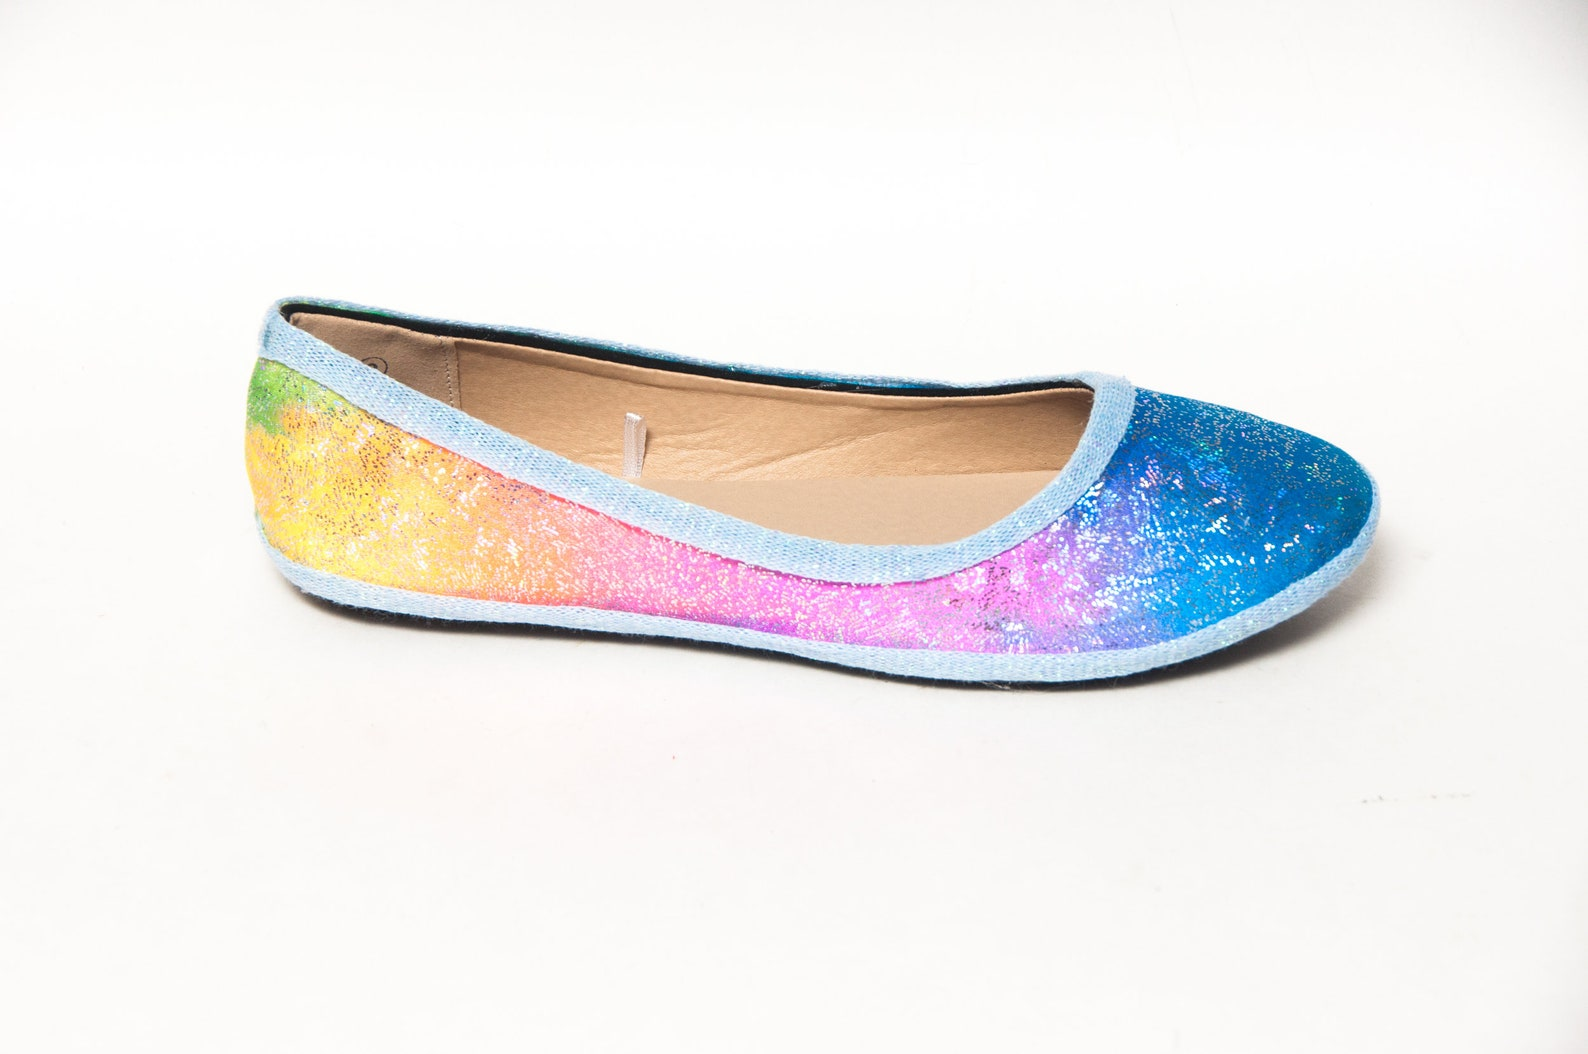 rainbow glitter fabric unicorn ballet flats shoes